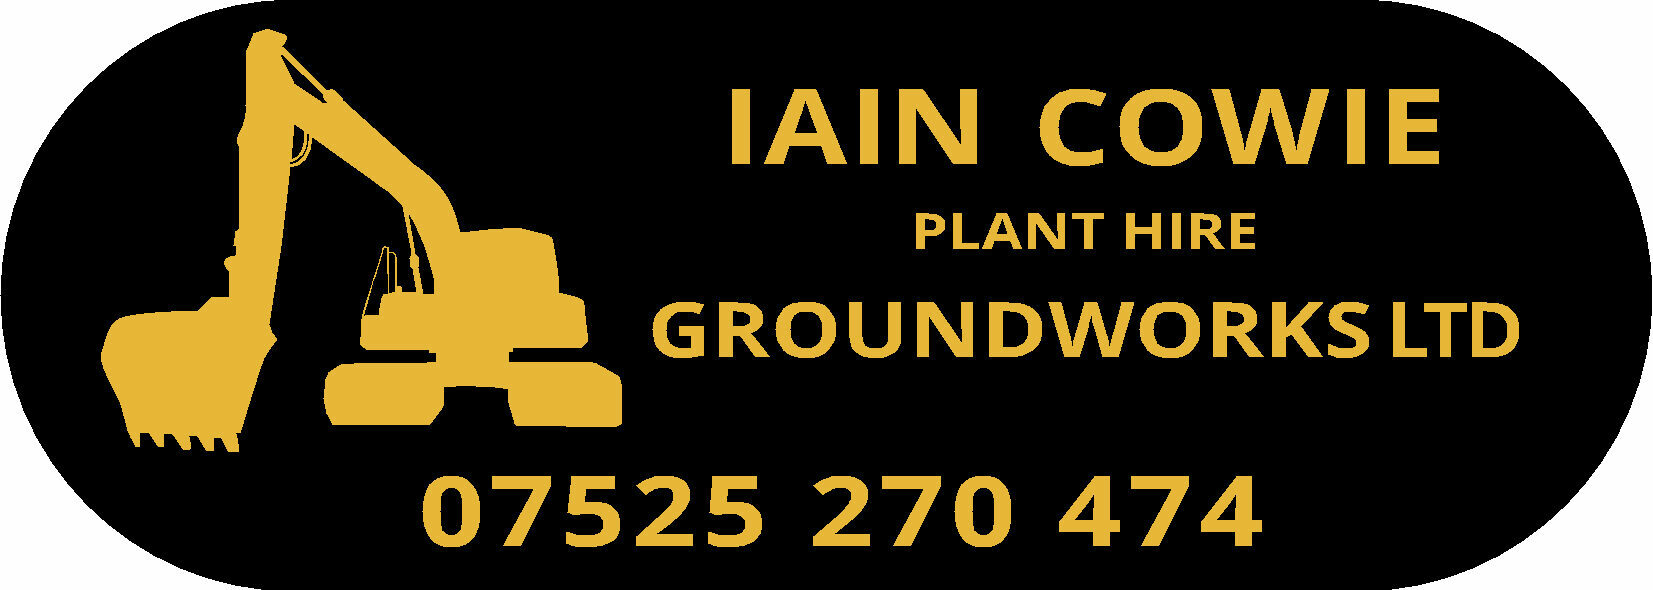 Iain Cowie Plant Hire & Groundworks